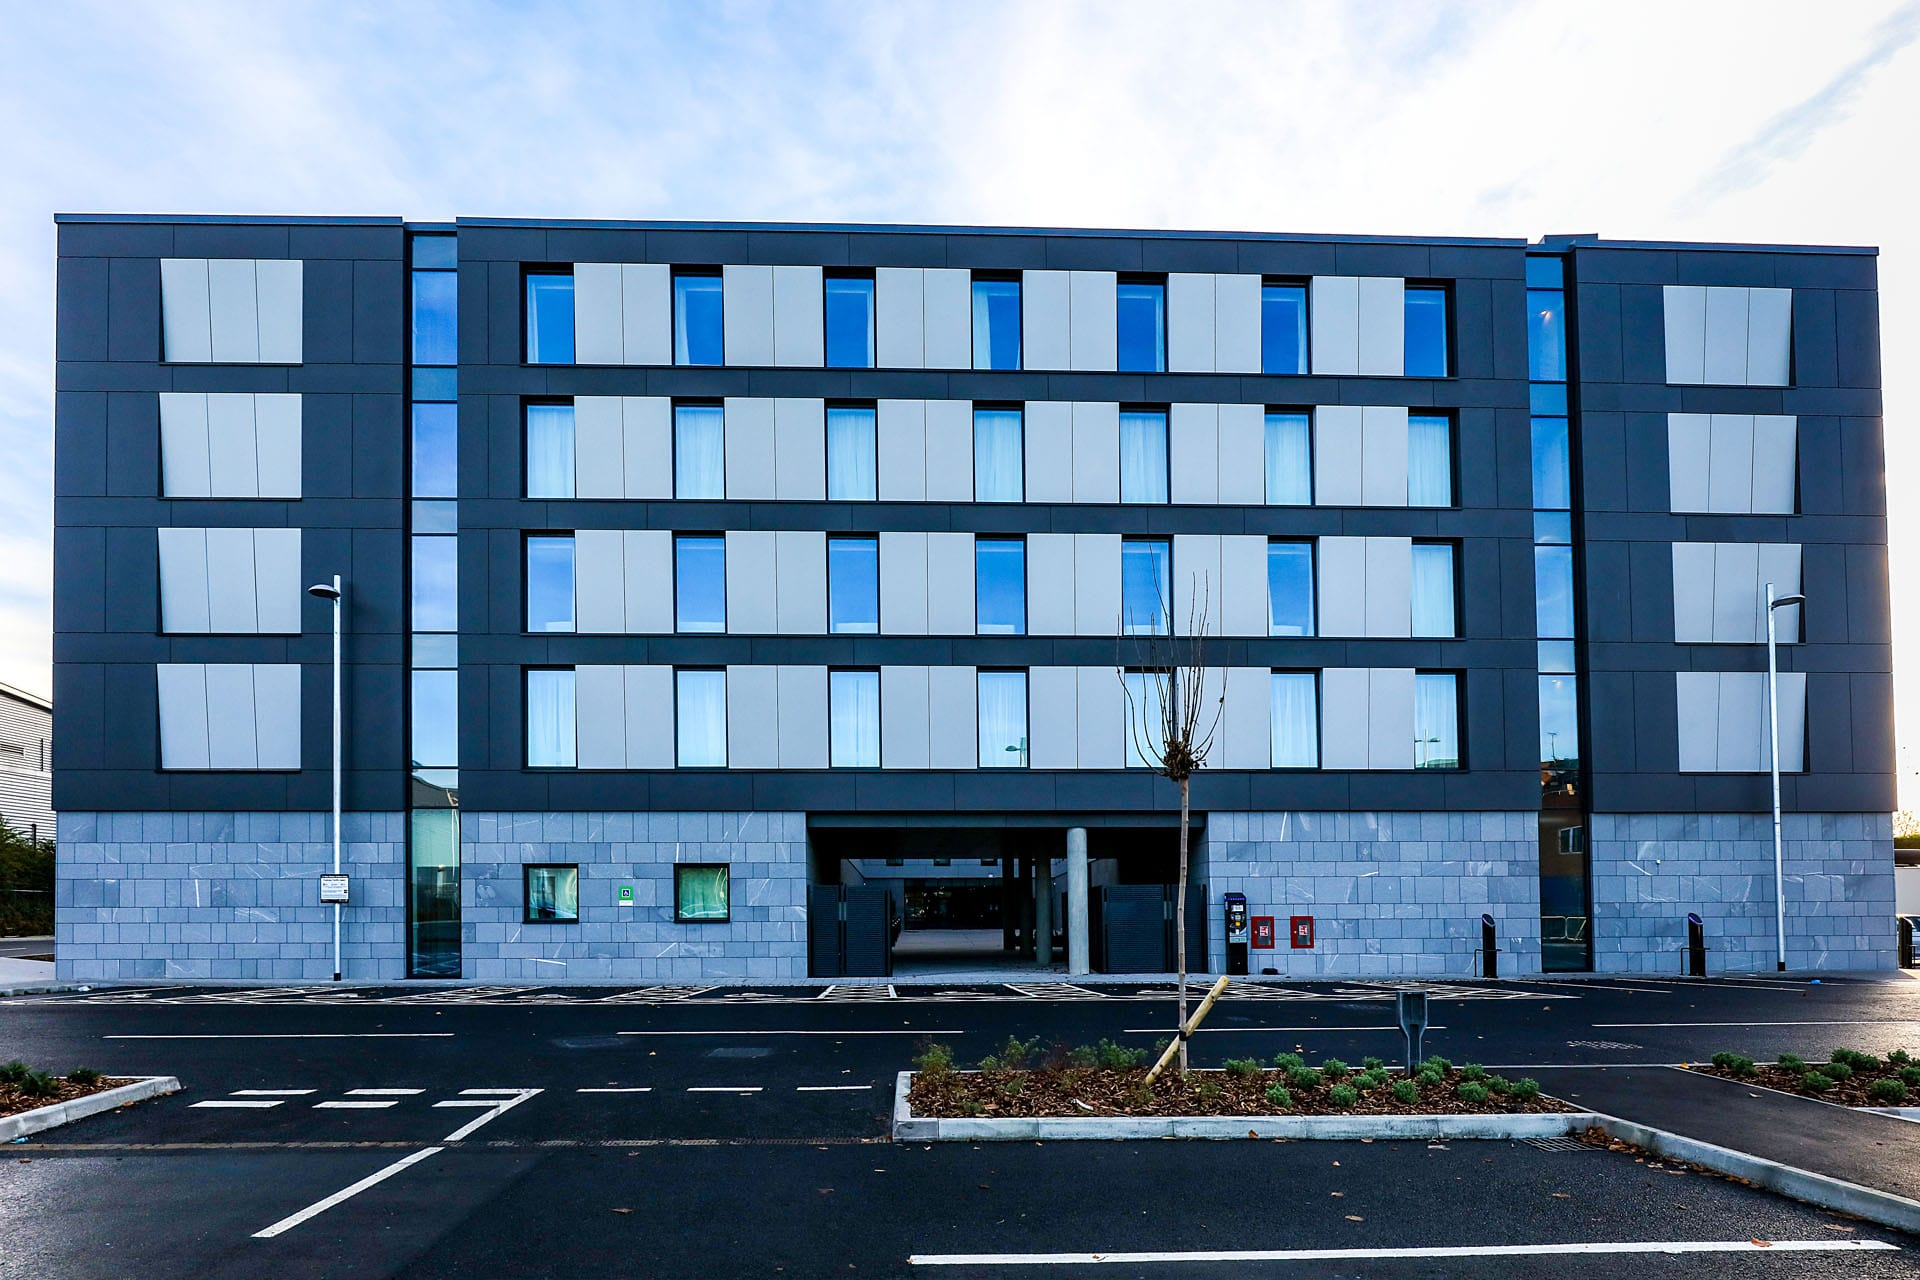 Holiday Inn Alucobond A2 ACM Heathrow 6